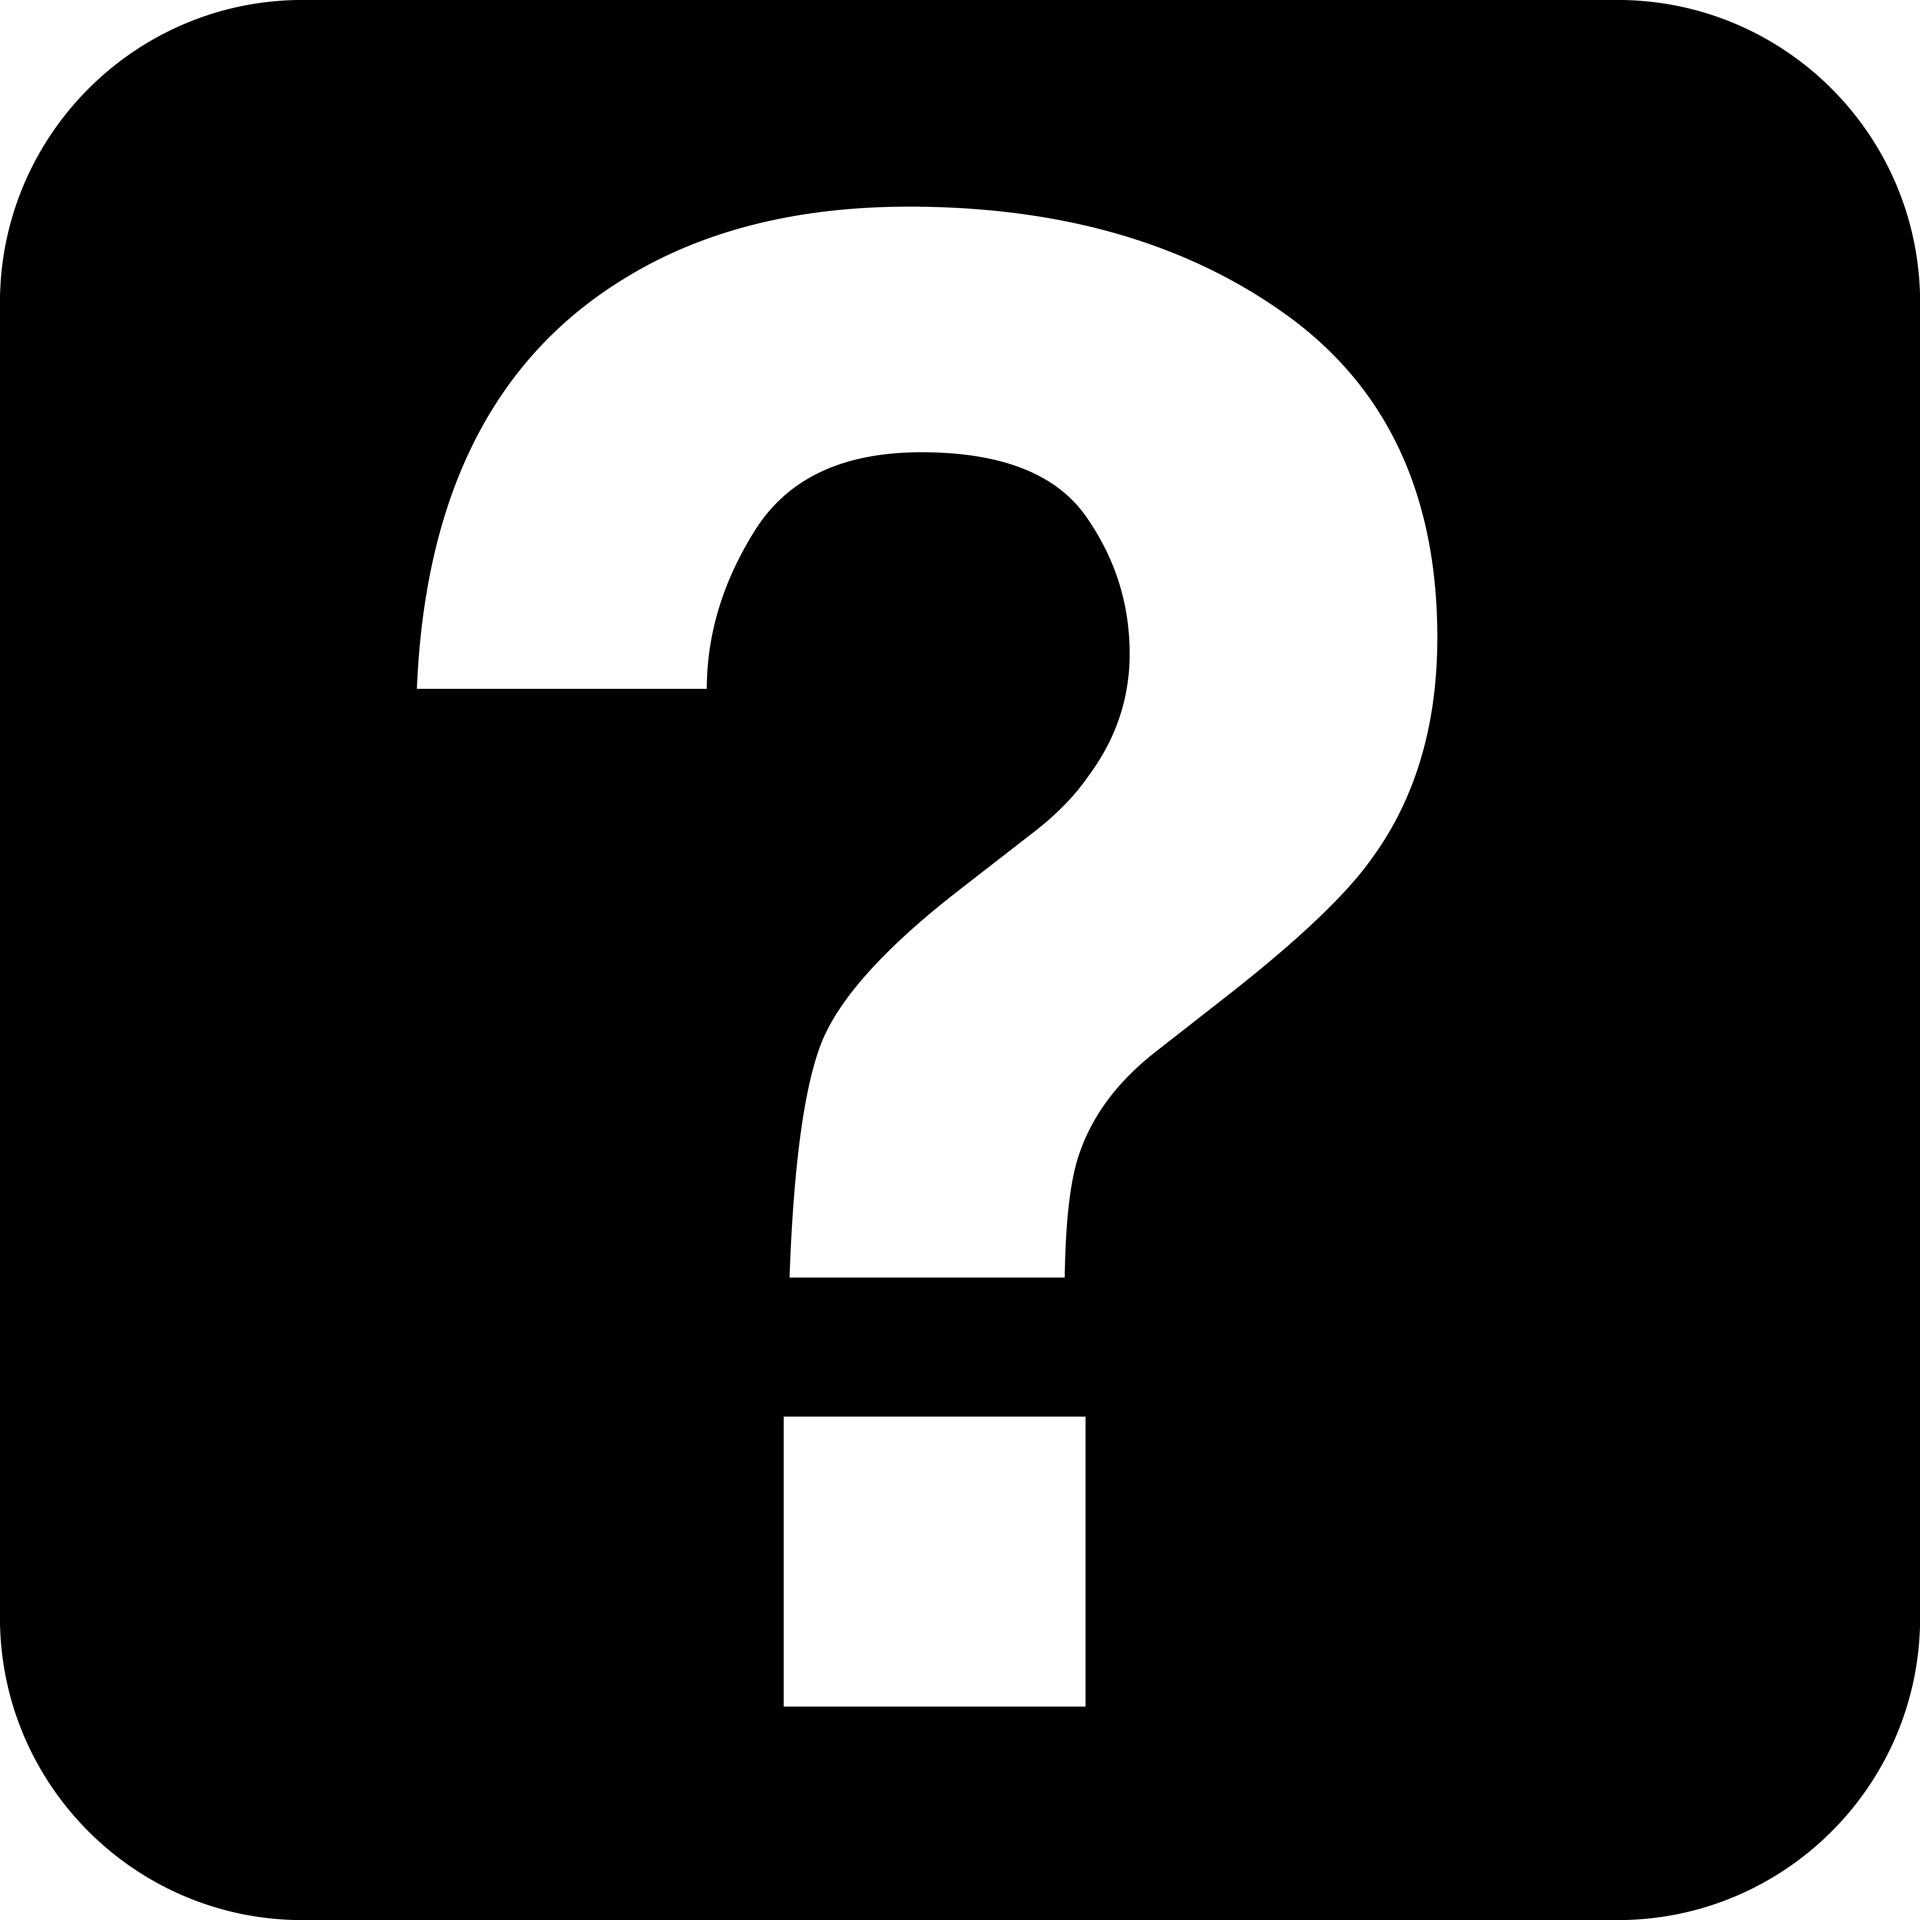 Image result for question mark